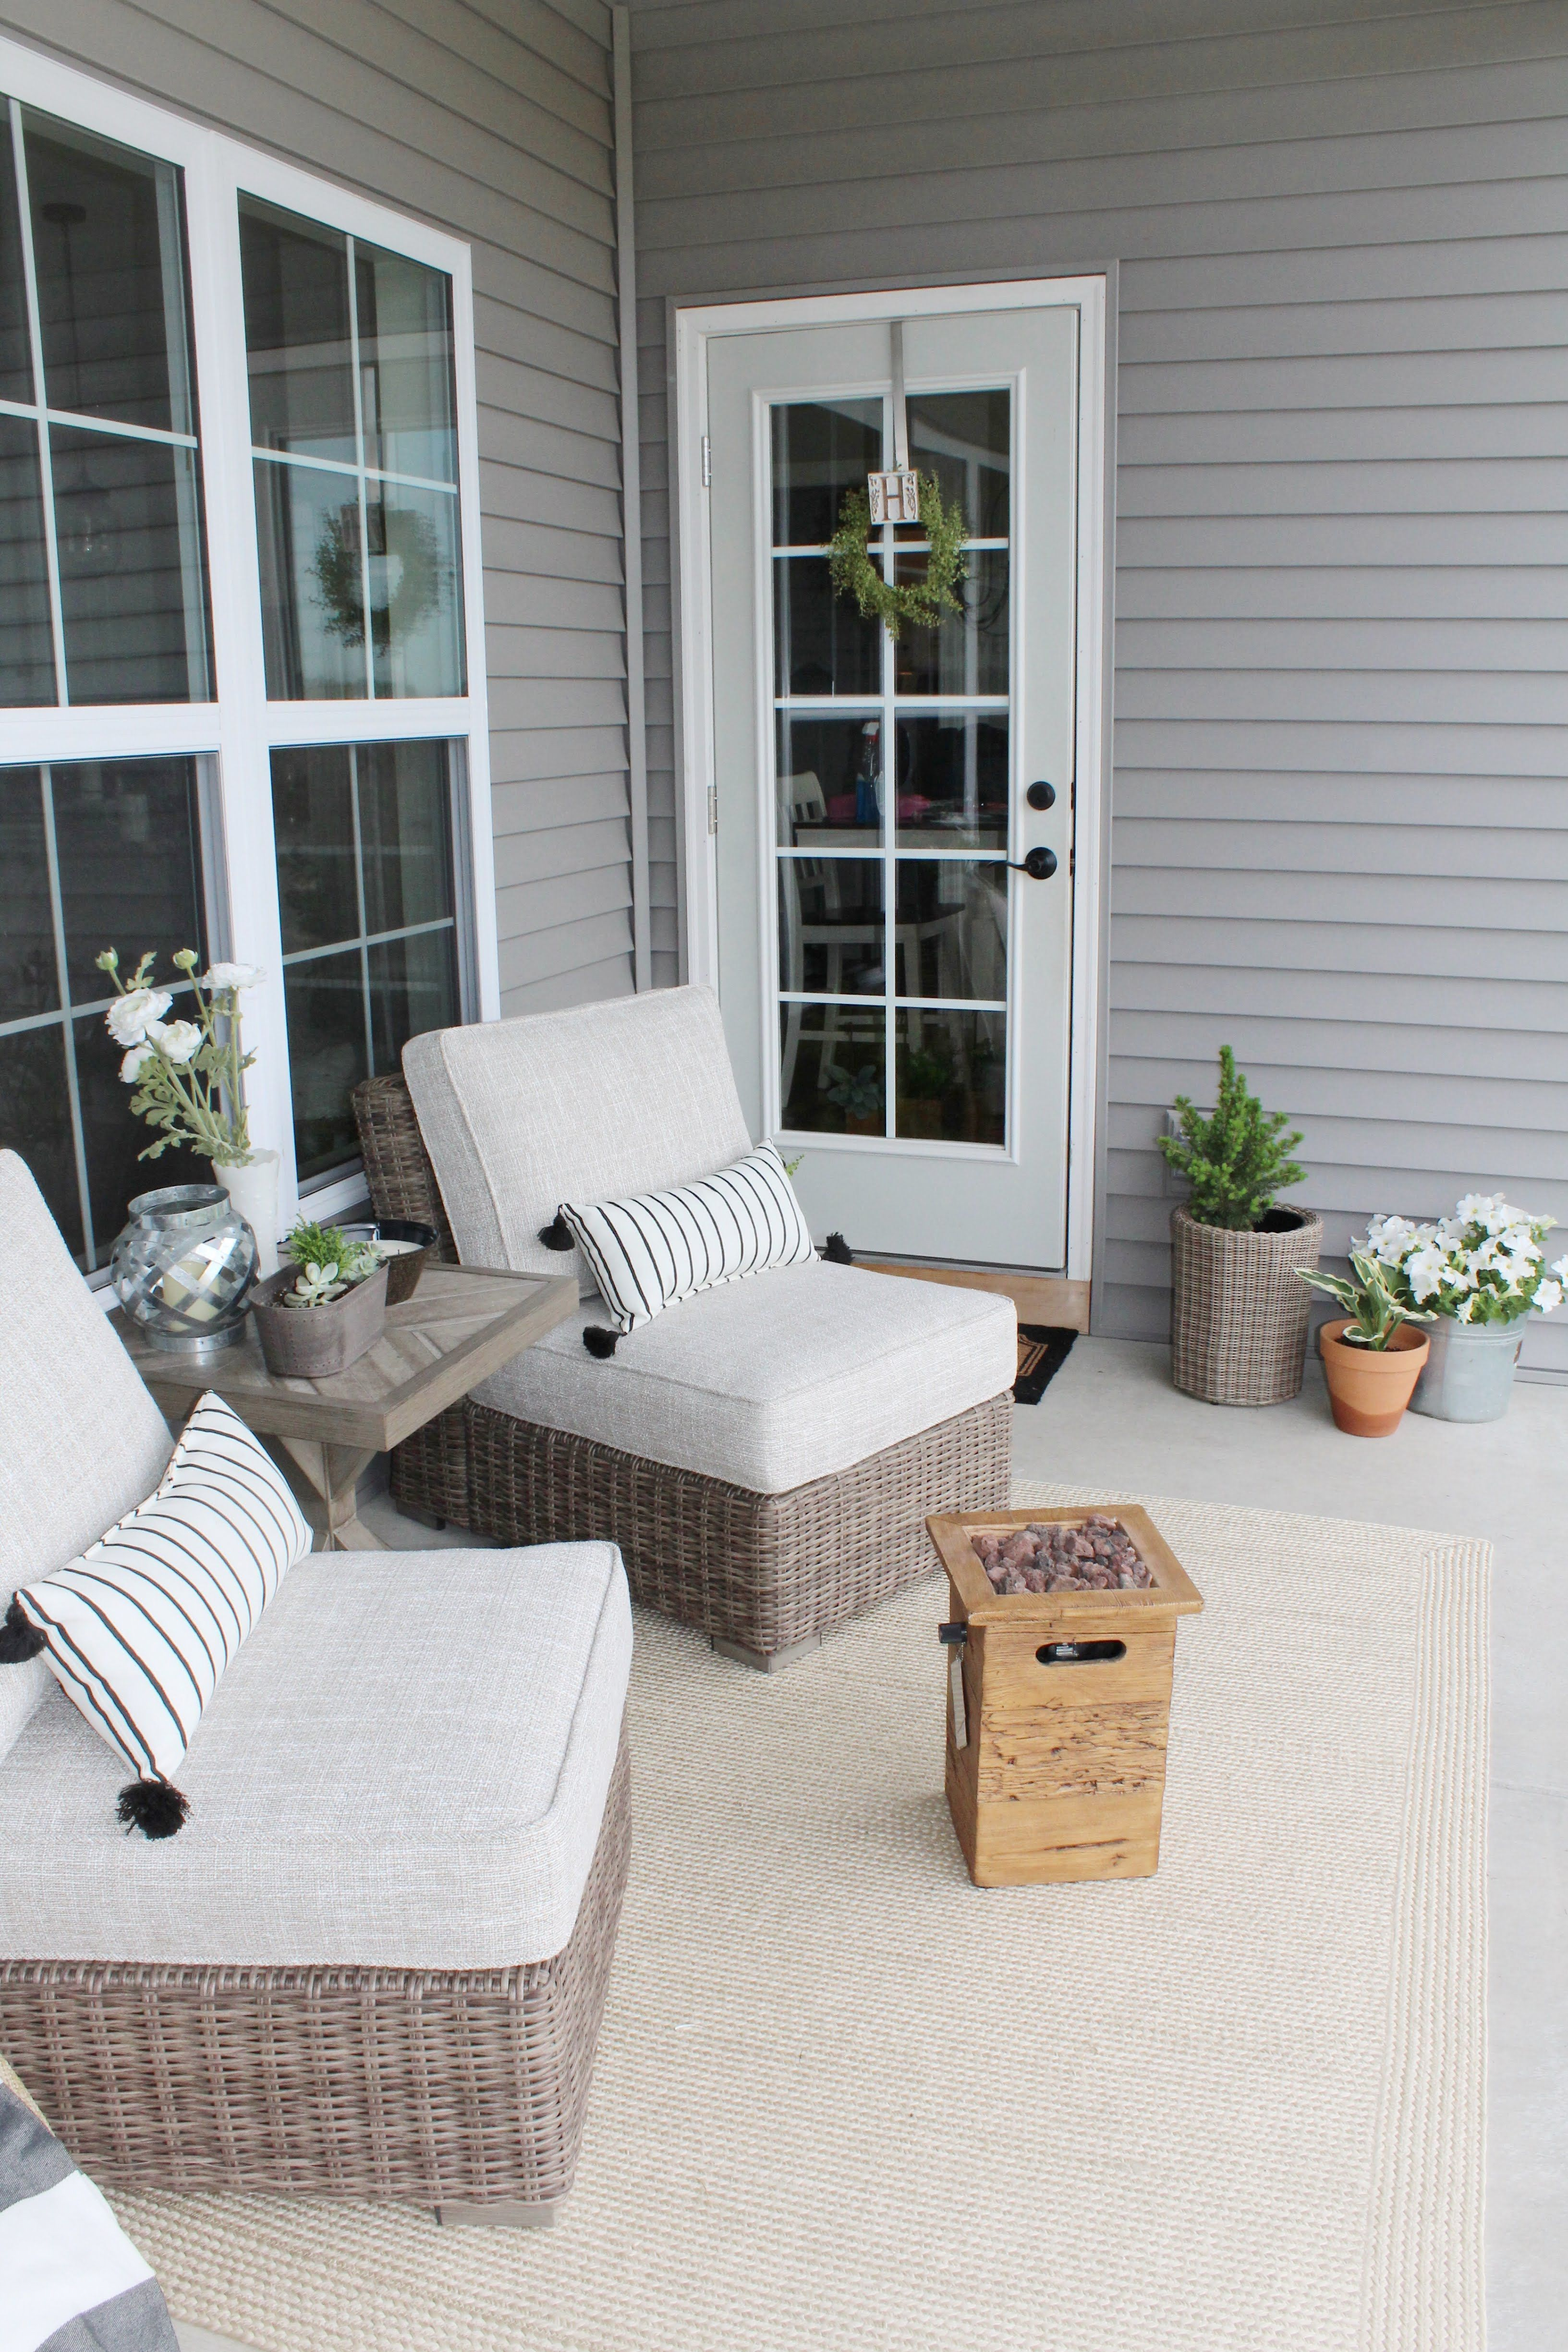 Beachcroft Armless Chair with Cushion, Beige in 2020 ... on Beachcroft Beige Outdoor Living Room Set  id=15217